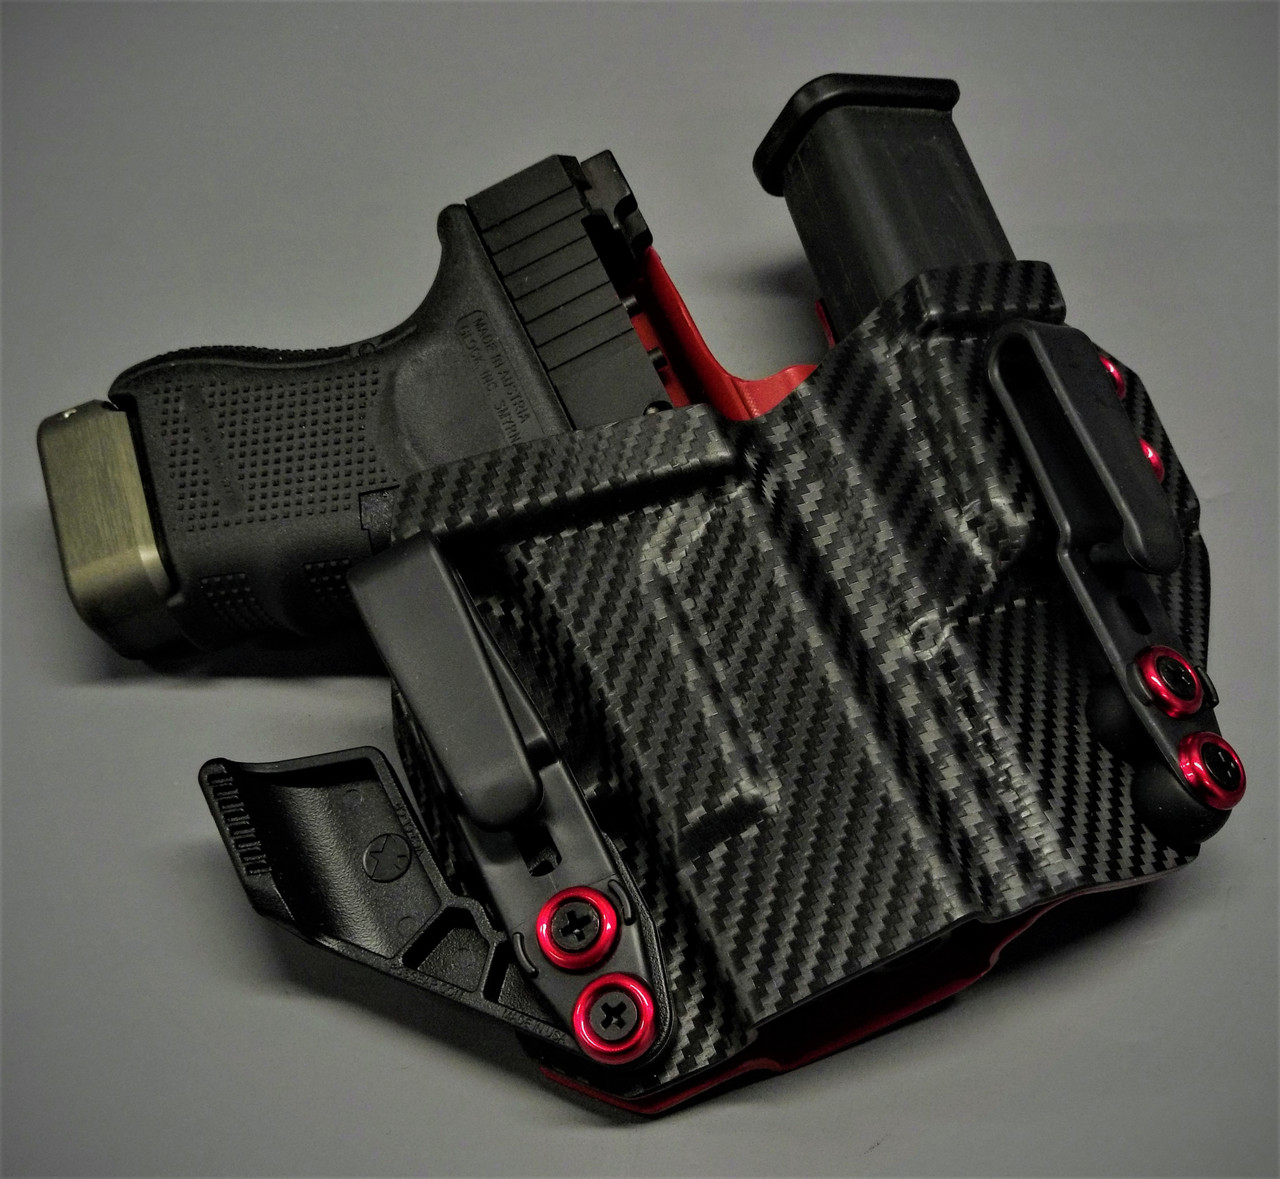 Glock 26 Sidecar Appendix Carry Rig